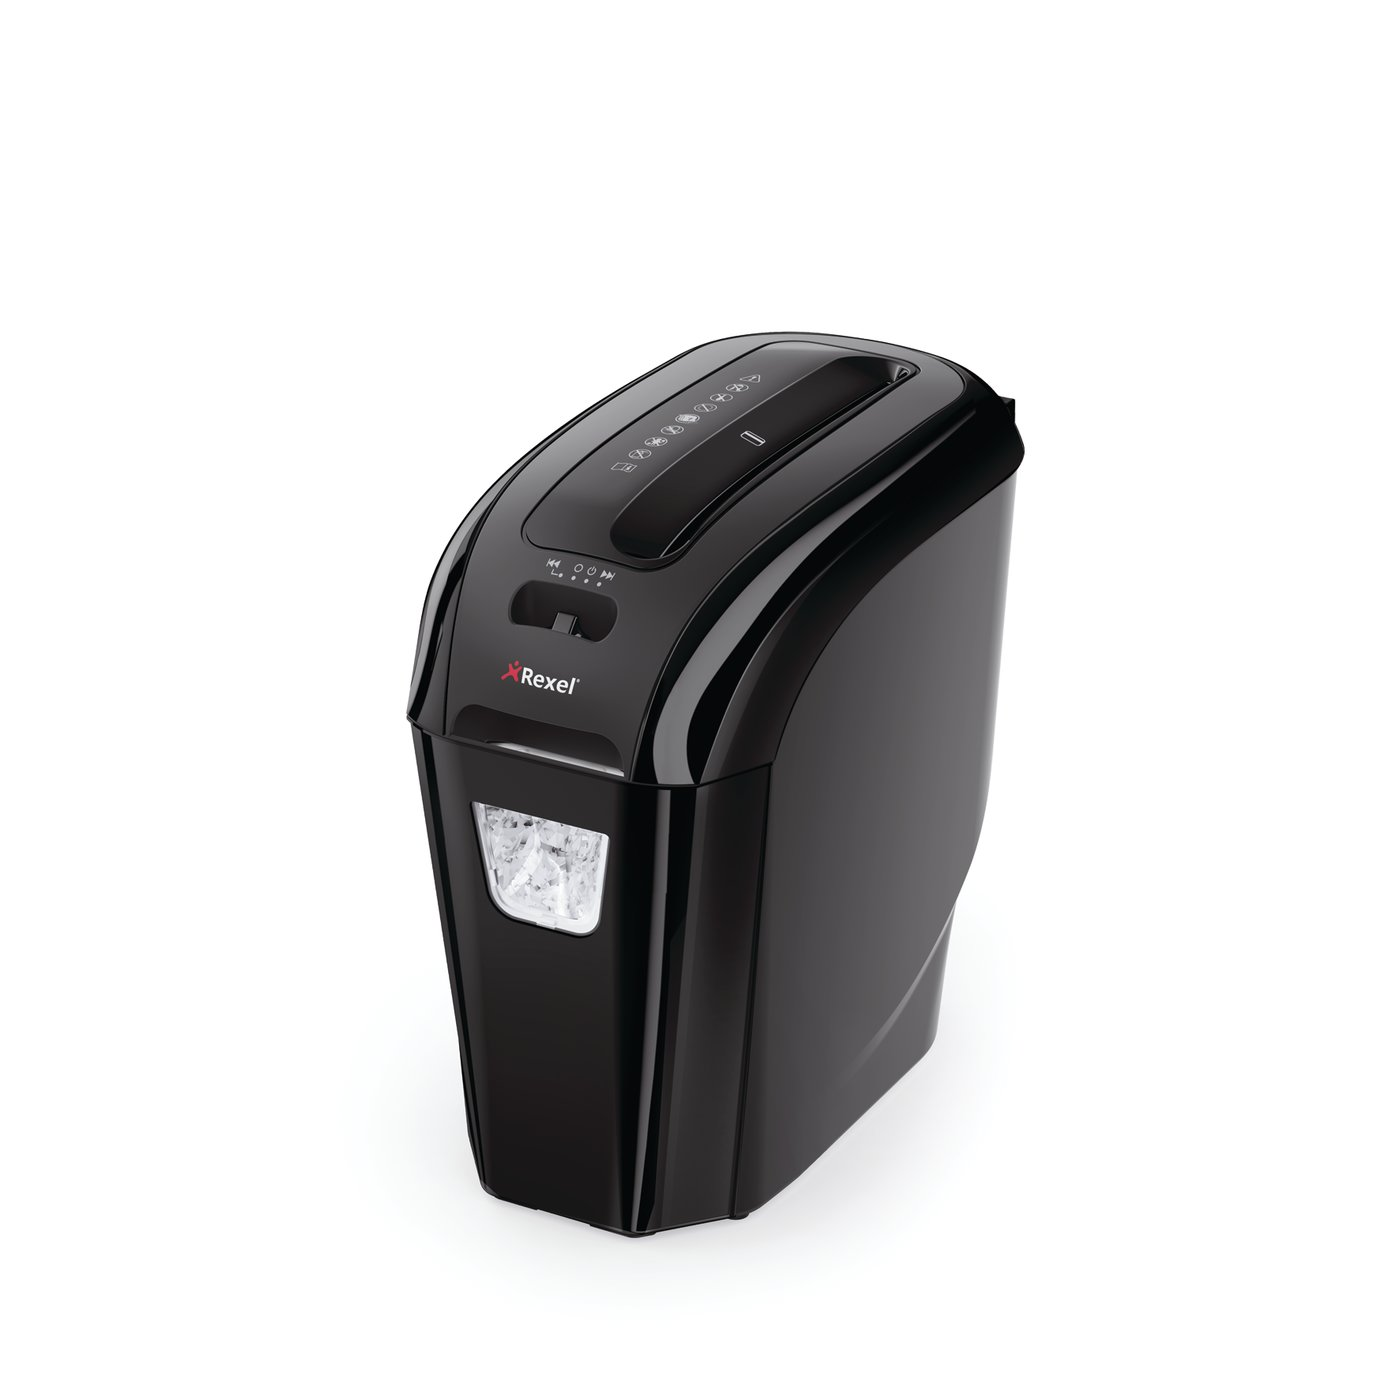 Personal Paper Shredders Rexel Products Shredders Personal Executive